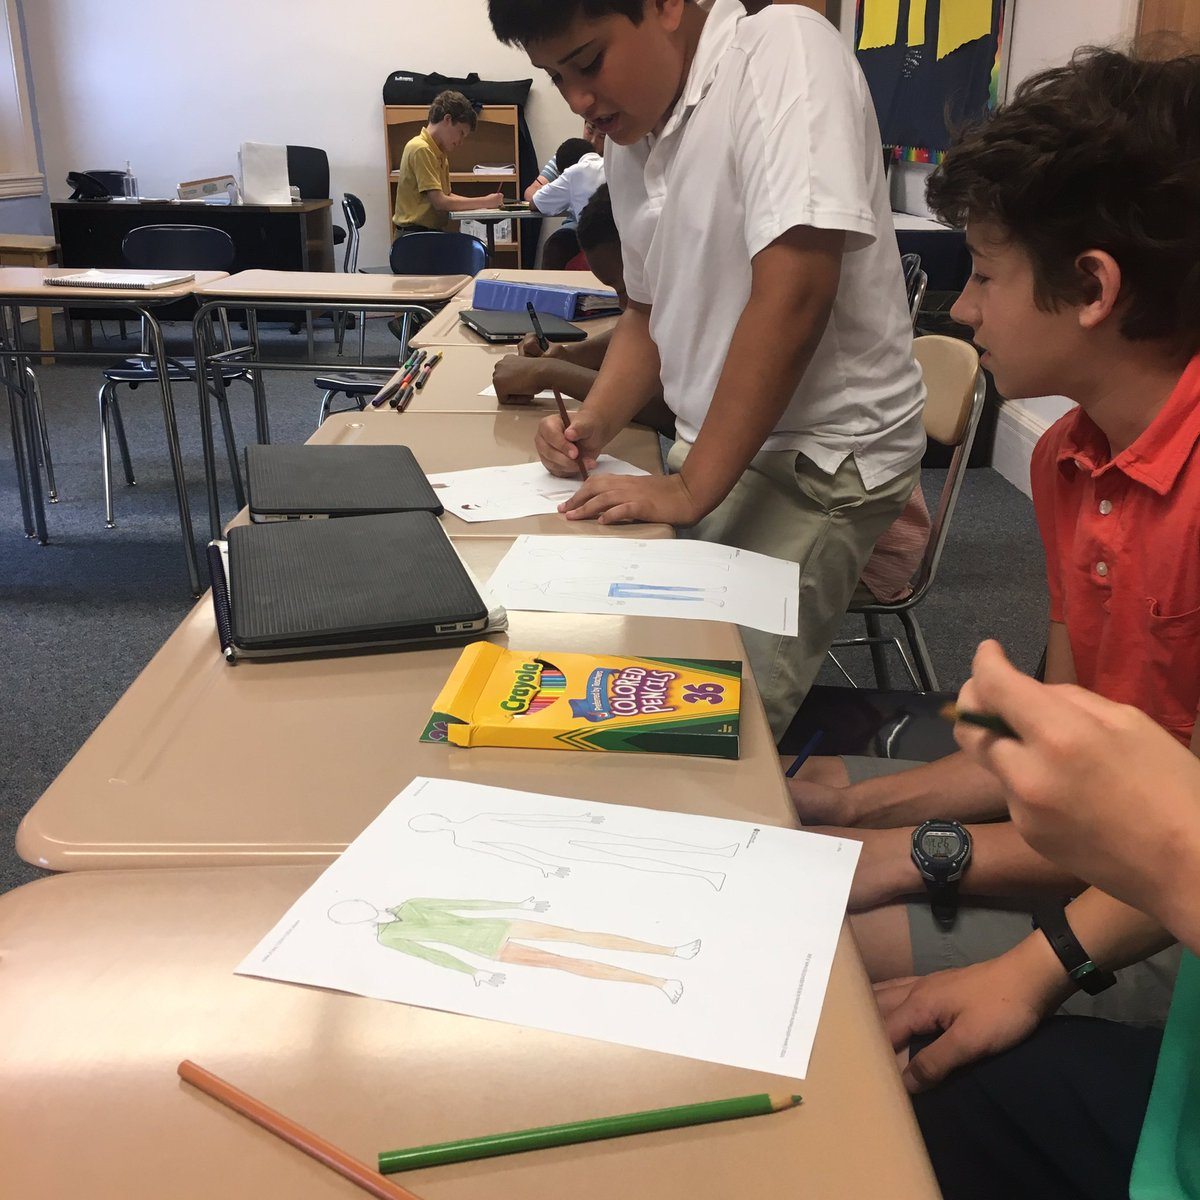 6th Grade Boys @schacademy designing costumes for their silent movie characters in CEL class @CELventures  #CEL #moviemaking #CEL2017<br>http://pic.twitter.com/C9Cbay3p2A